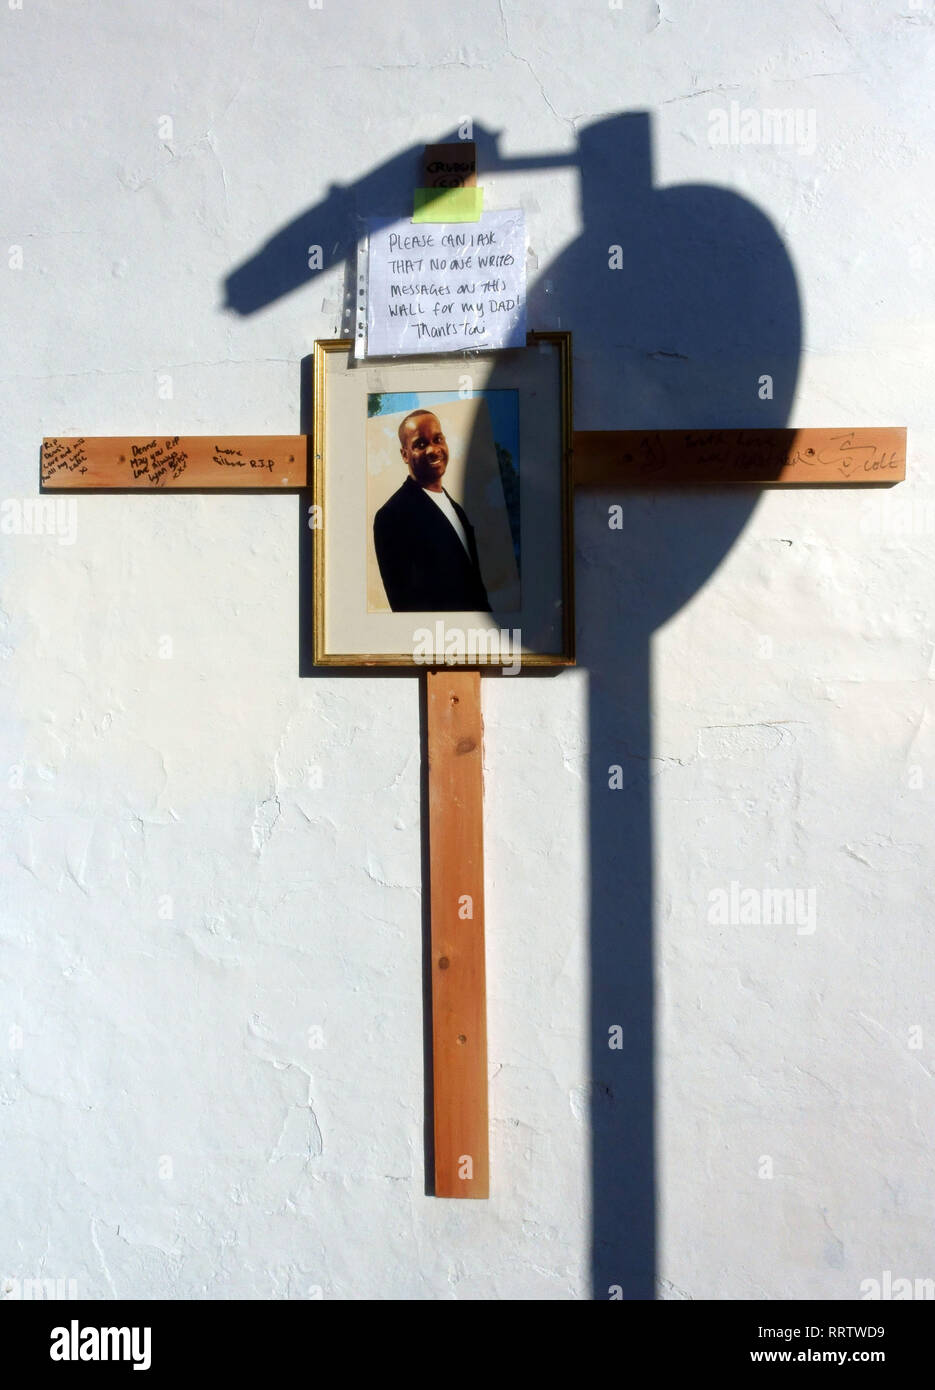 Memorial to fatal stabbing victim Dennis Anderson in East Dulwich, South East London - Stock Image